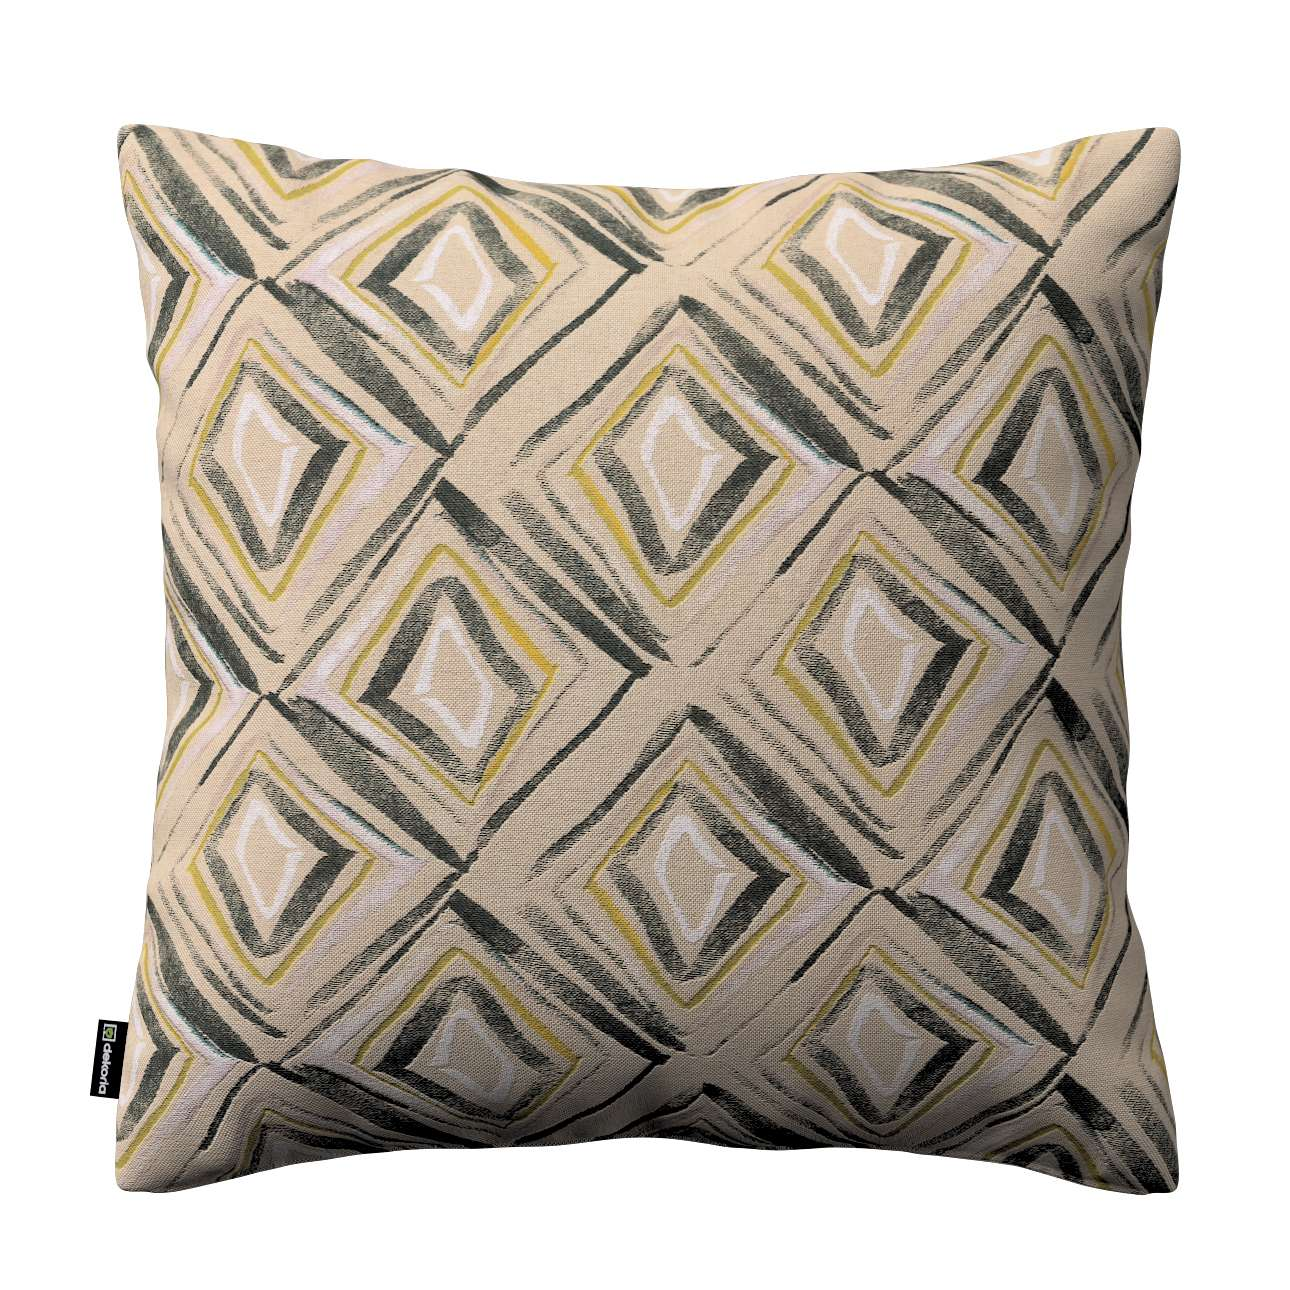 Kinga cushion cover 43 x 43 cm (17 x 17 inch) in collection Londres, fabric: 140-46